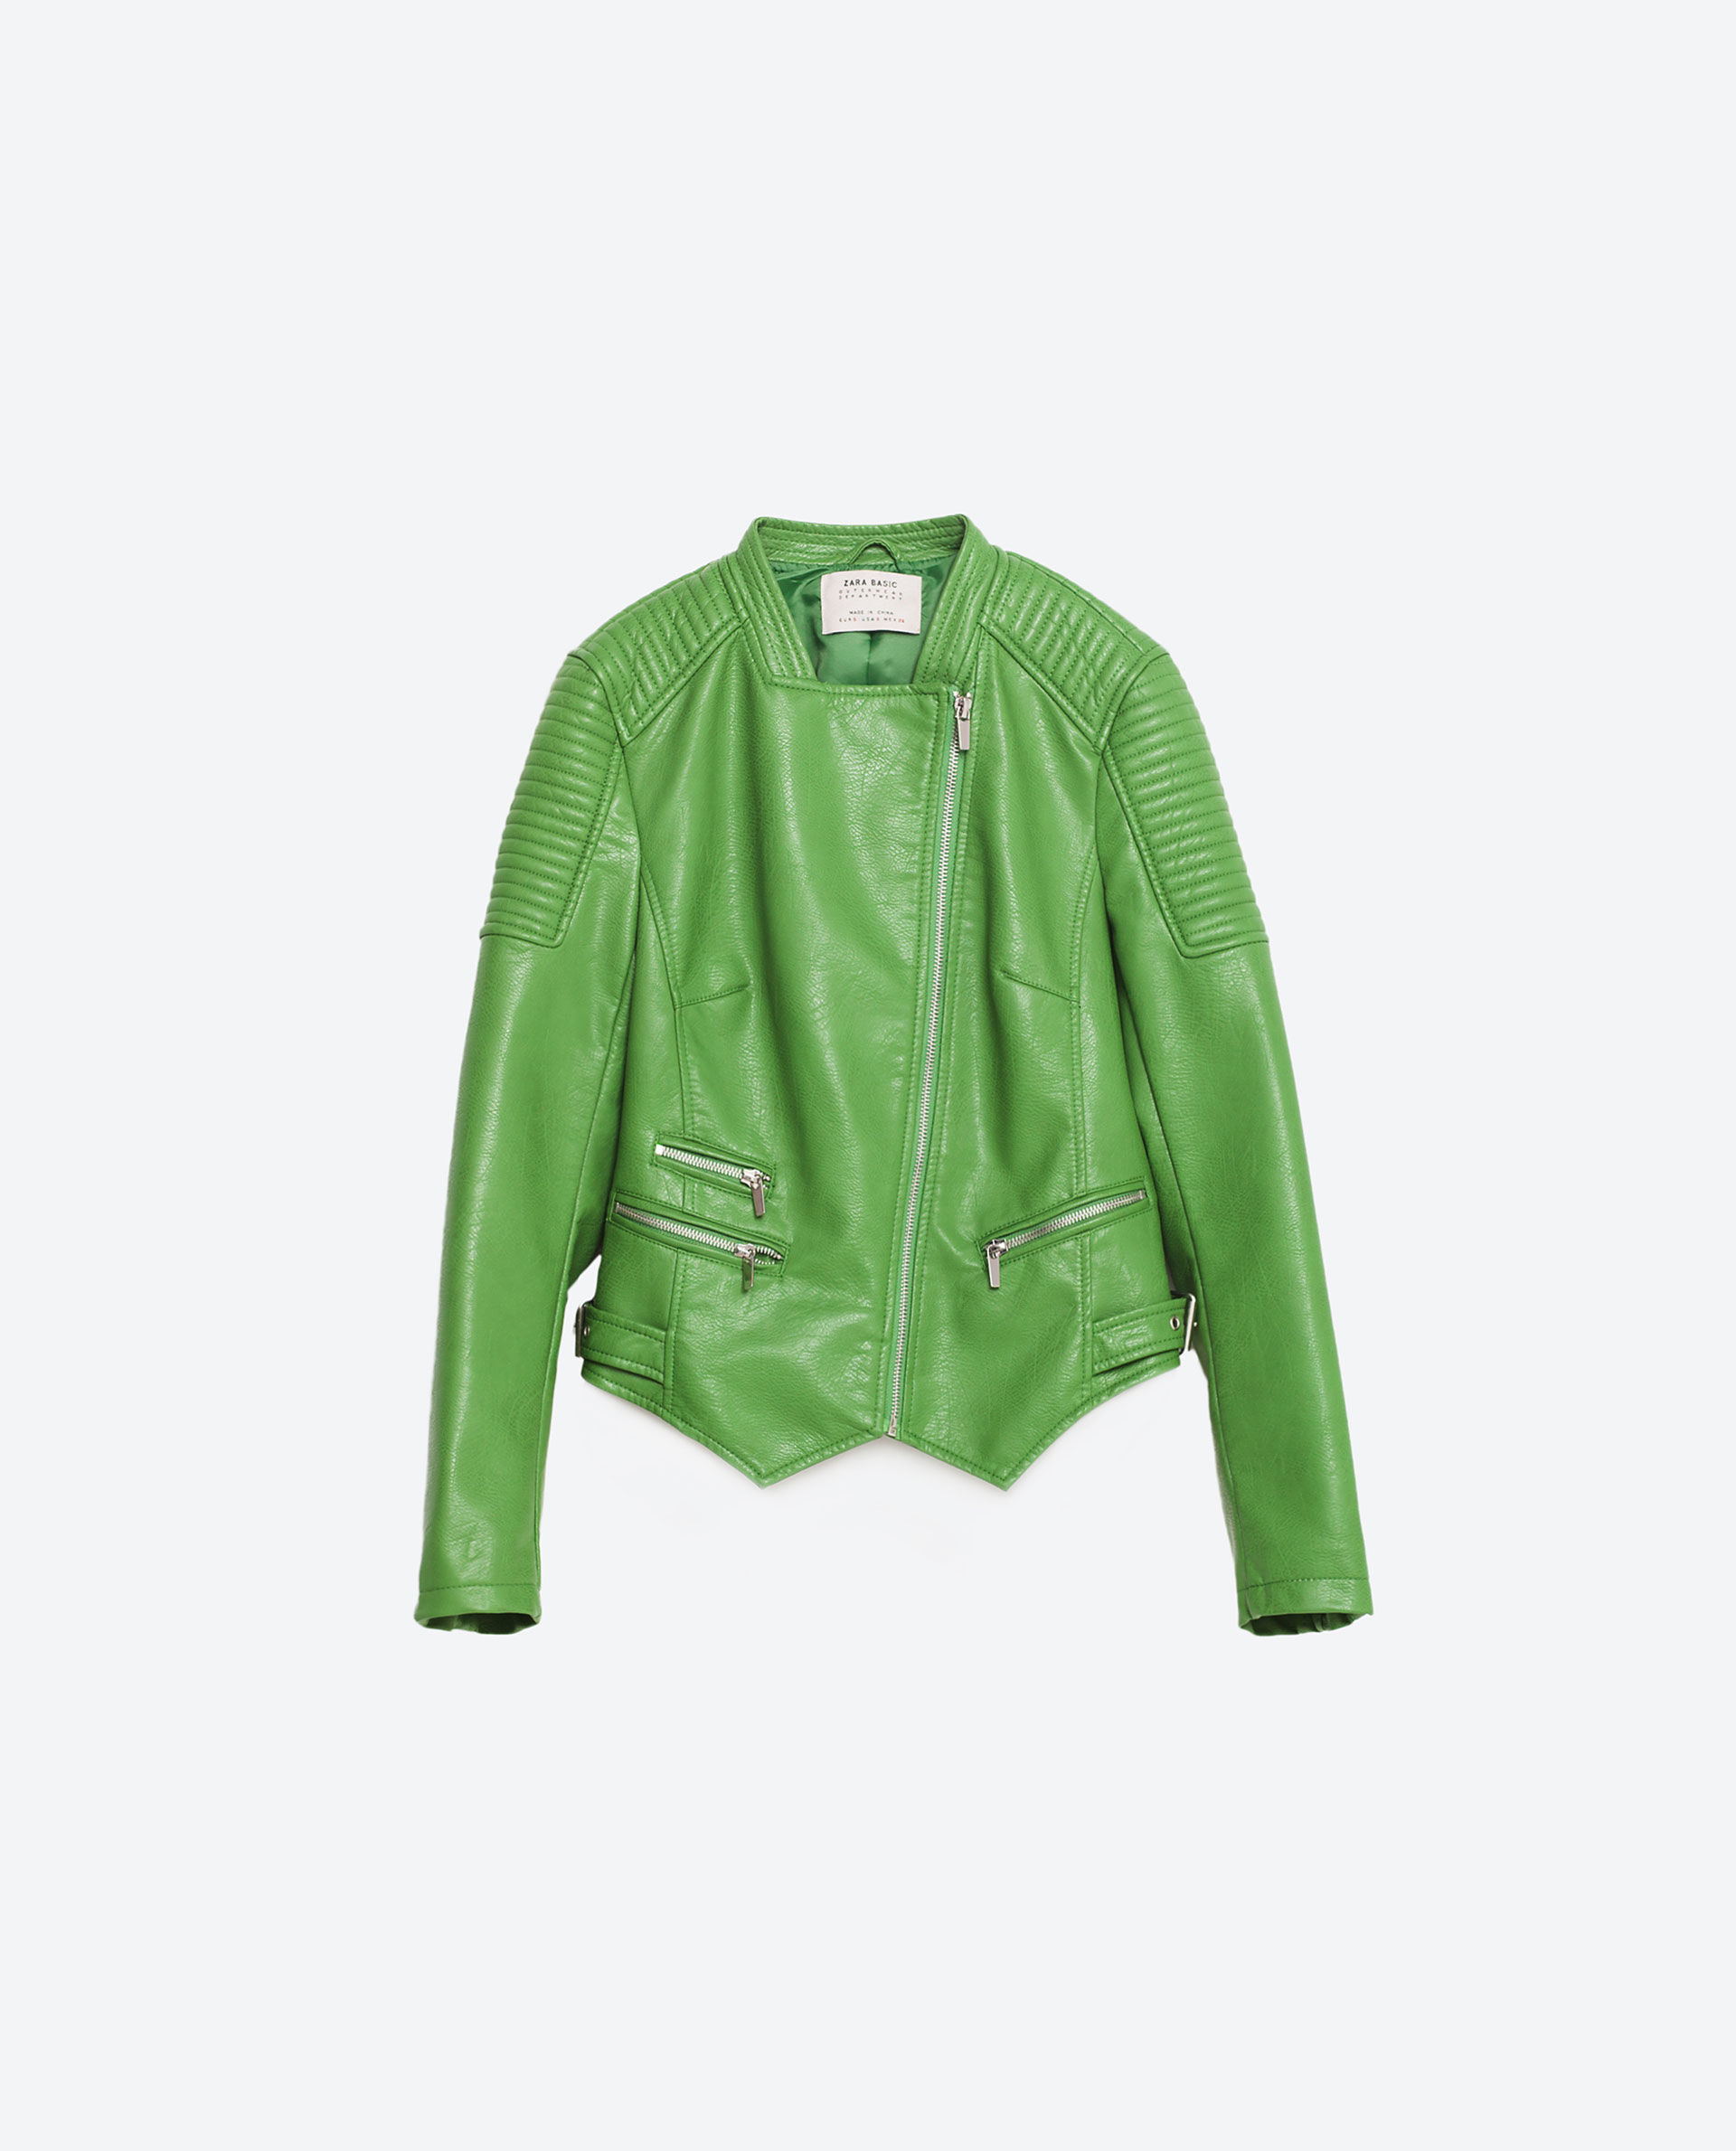 Zara Faux Leather Jacket in Green | Lyst